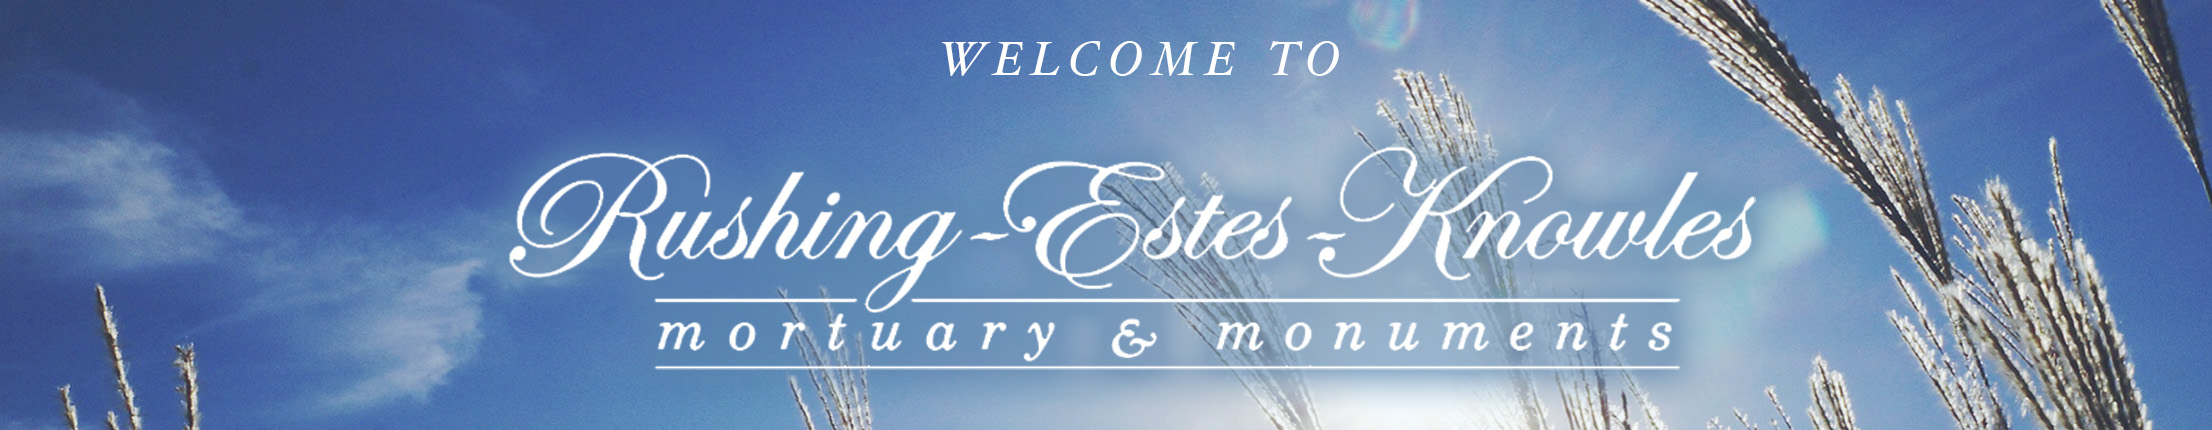 rushing estes knowles mortuary funeral home logo